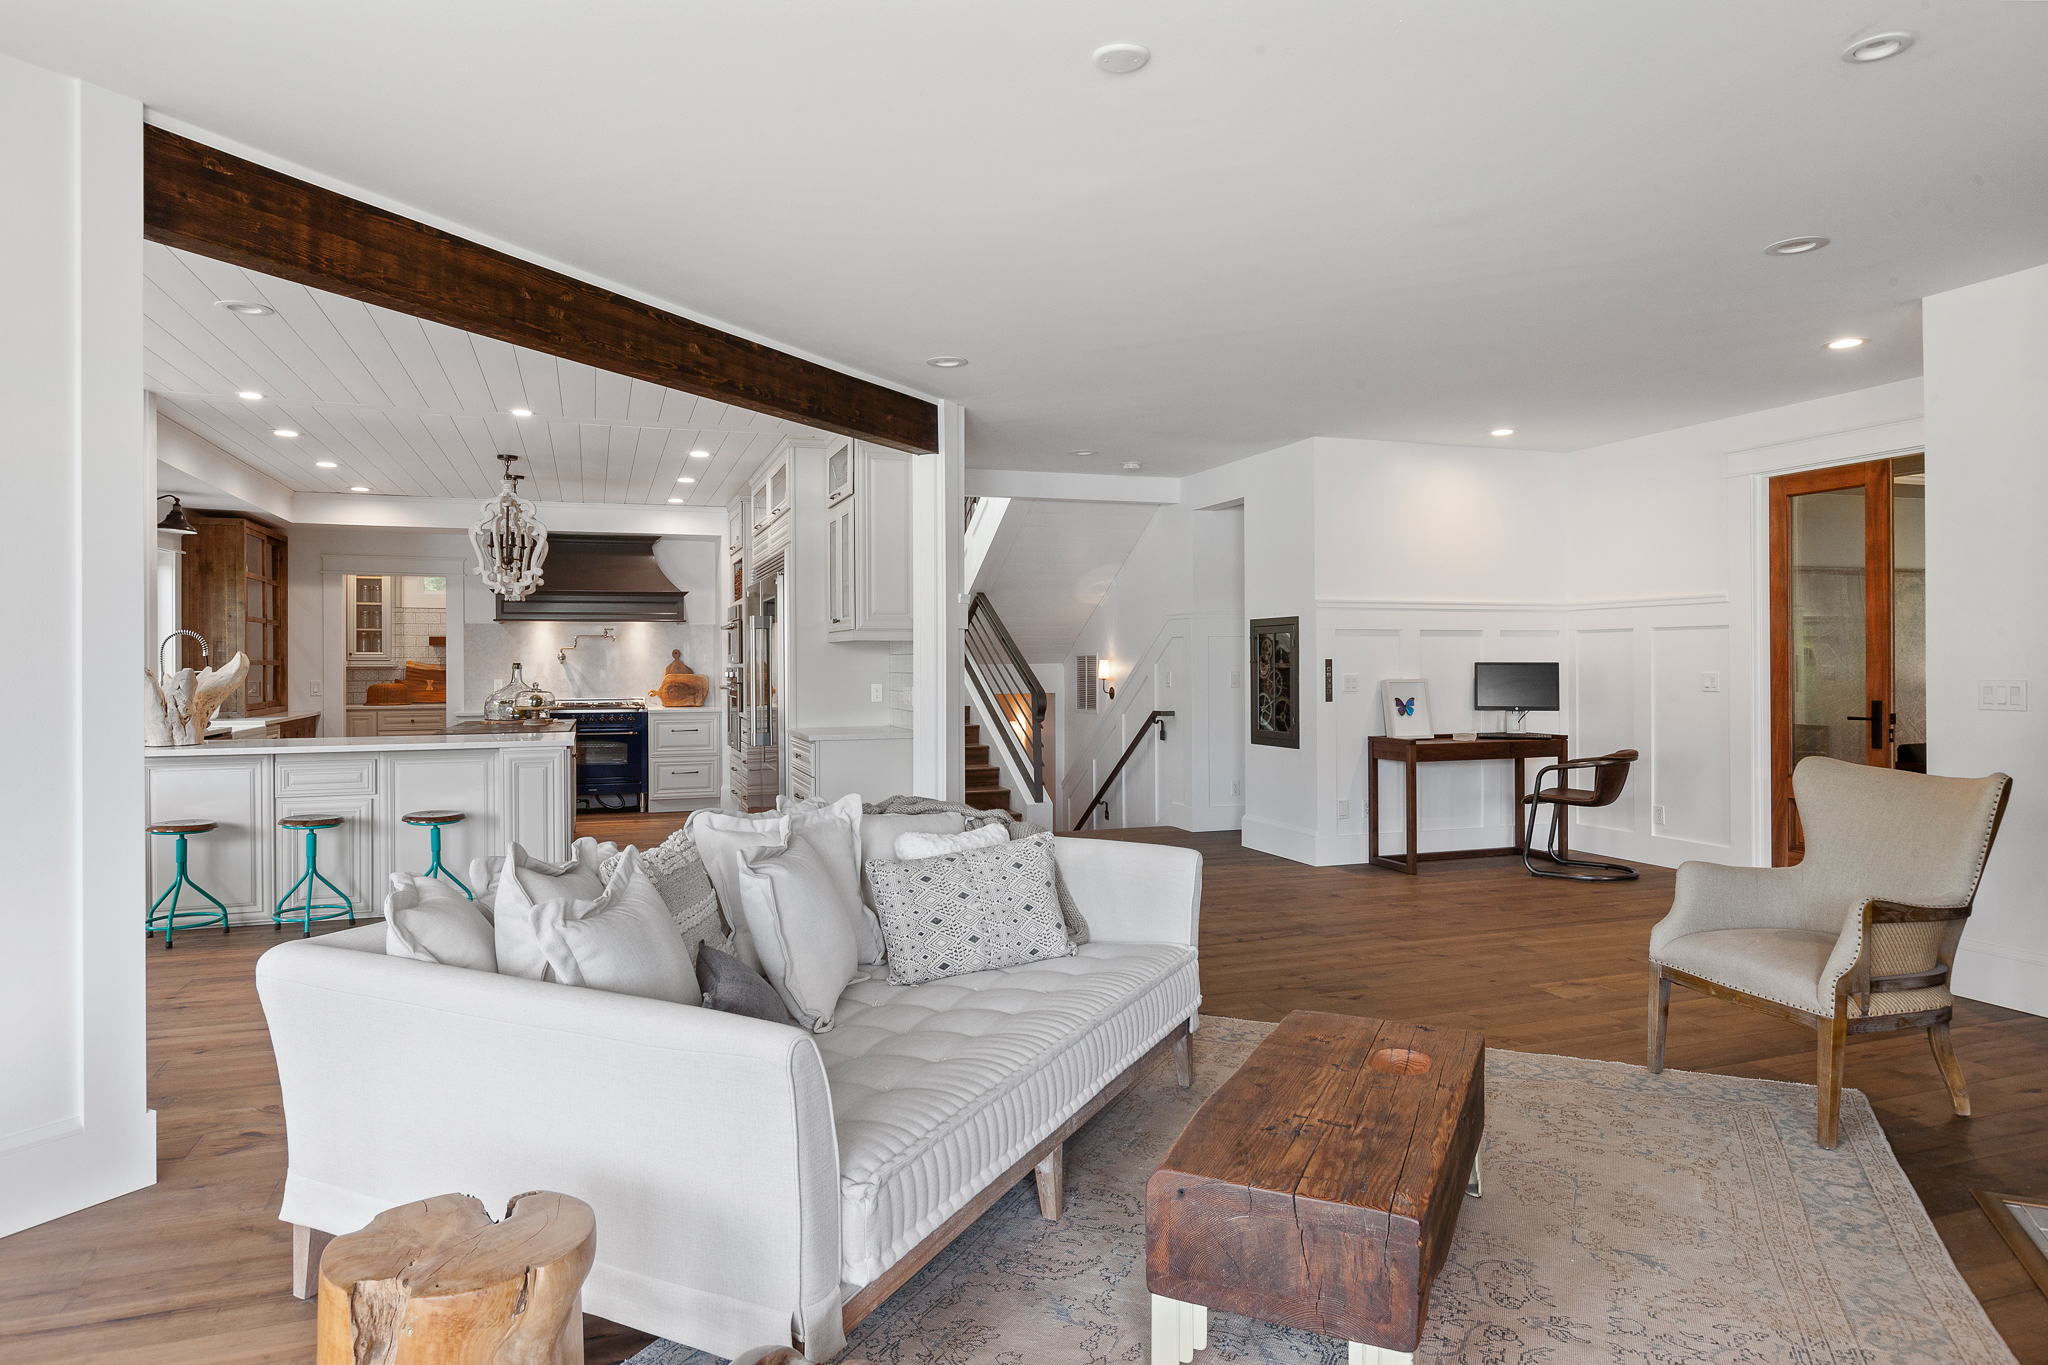 "This $3 million beachfront home built in 2001 on Fox Island went from ""Miami Vice"" to Northwest Coastal Chic with a complete remodel in 2020, according to current owners and designers Monica Gujral and Terrence Wallace. Freshwater clams and seafood come year-round at this property, which comes with full tide flat rights. Coming in at just over 5,000 square feet, it features four bedrooms, five bathrooms, 291-feet of private beach, a wine cellar, library, theater (with some seriously cool lights), dog washing station and so much more!{&nbsp;}<a  href=""https://karihaas.com/listing/WA/Fox-Island/273-North-Shore-Blvd-98333/108990478"" target=""_blank"" title=""https://karihaas.com/listing/WA/Fox-Island/273-North-Shore-Blvd-98333/108990478"">Check out the listing, being sold by Windermere's Kari Haas, for more information</a>. (Image: Kari Haas & Josh Marshall Photography)"